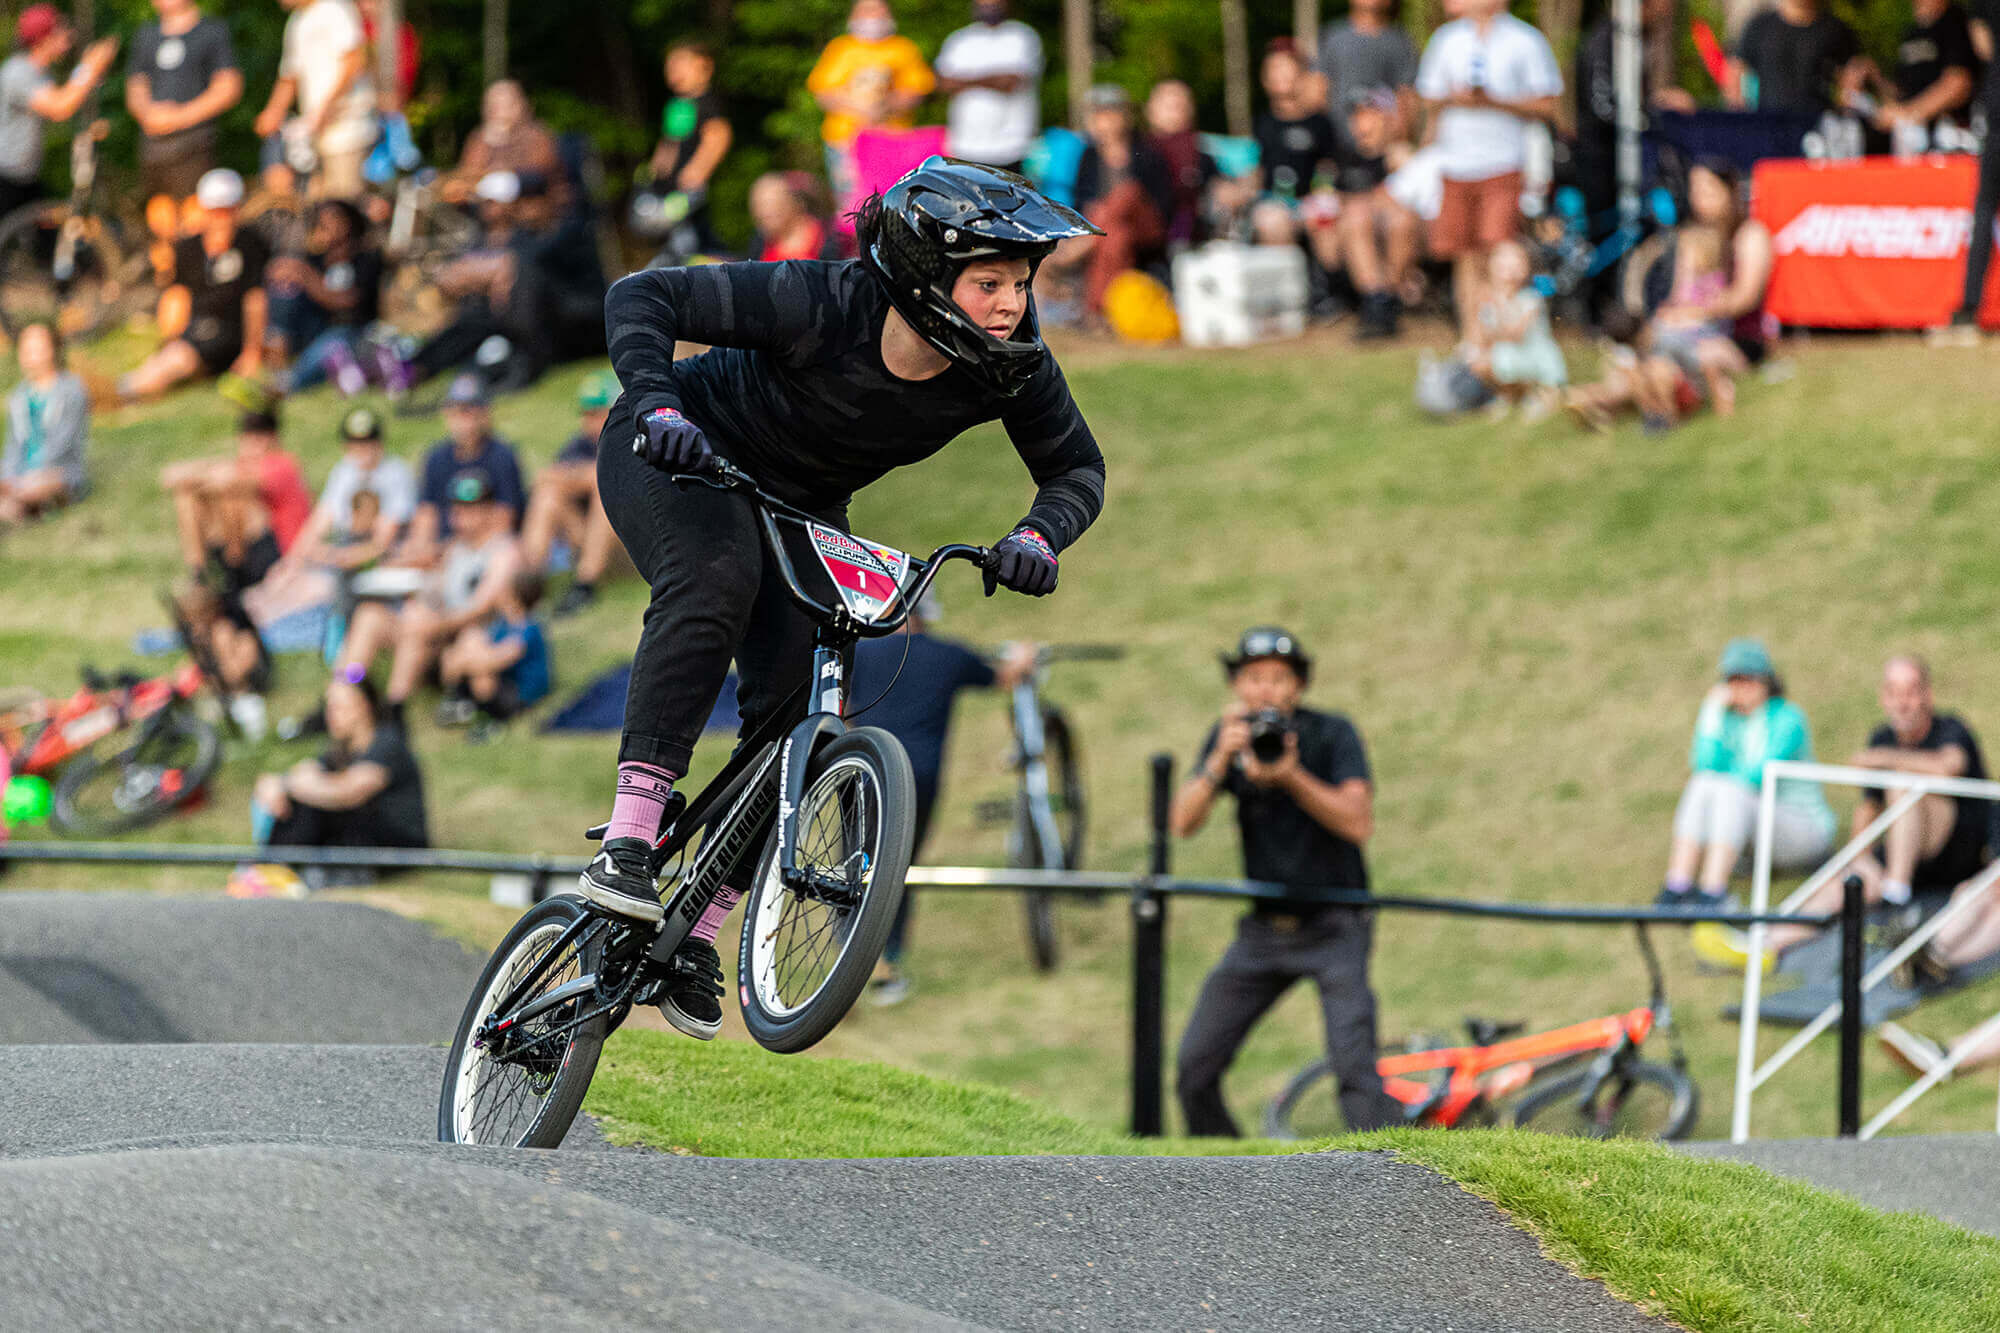 Red Bull Pump Track Qualifier Gaston County May 2021 - Brian Hall - ATL-0082